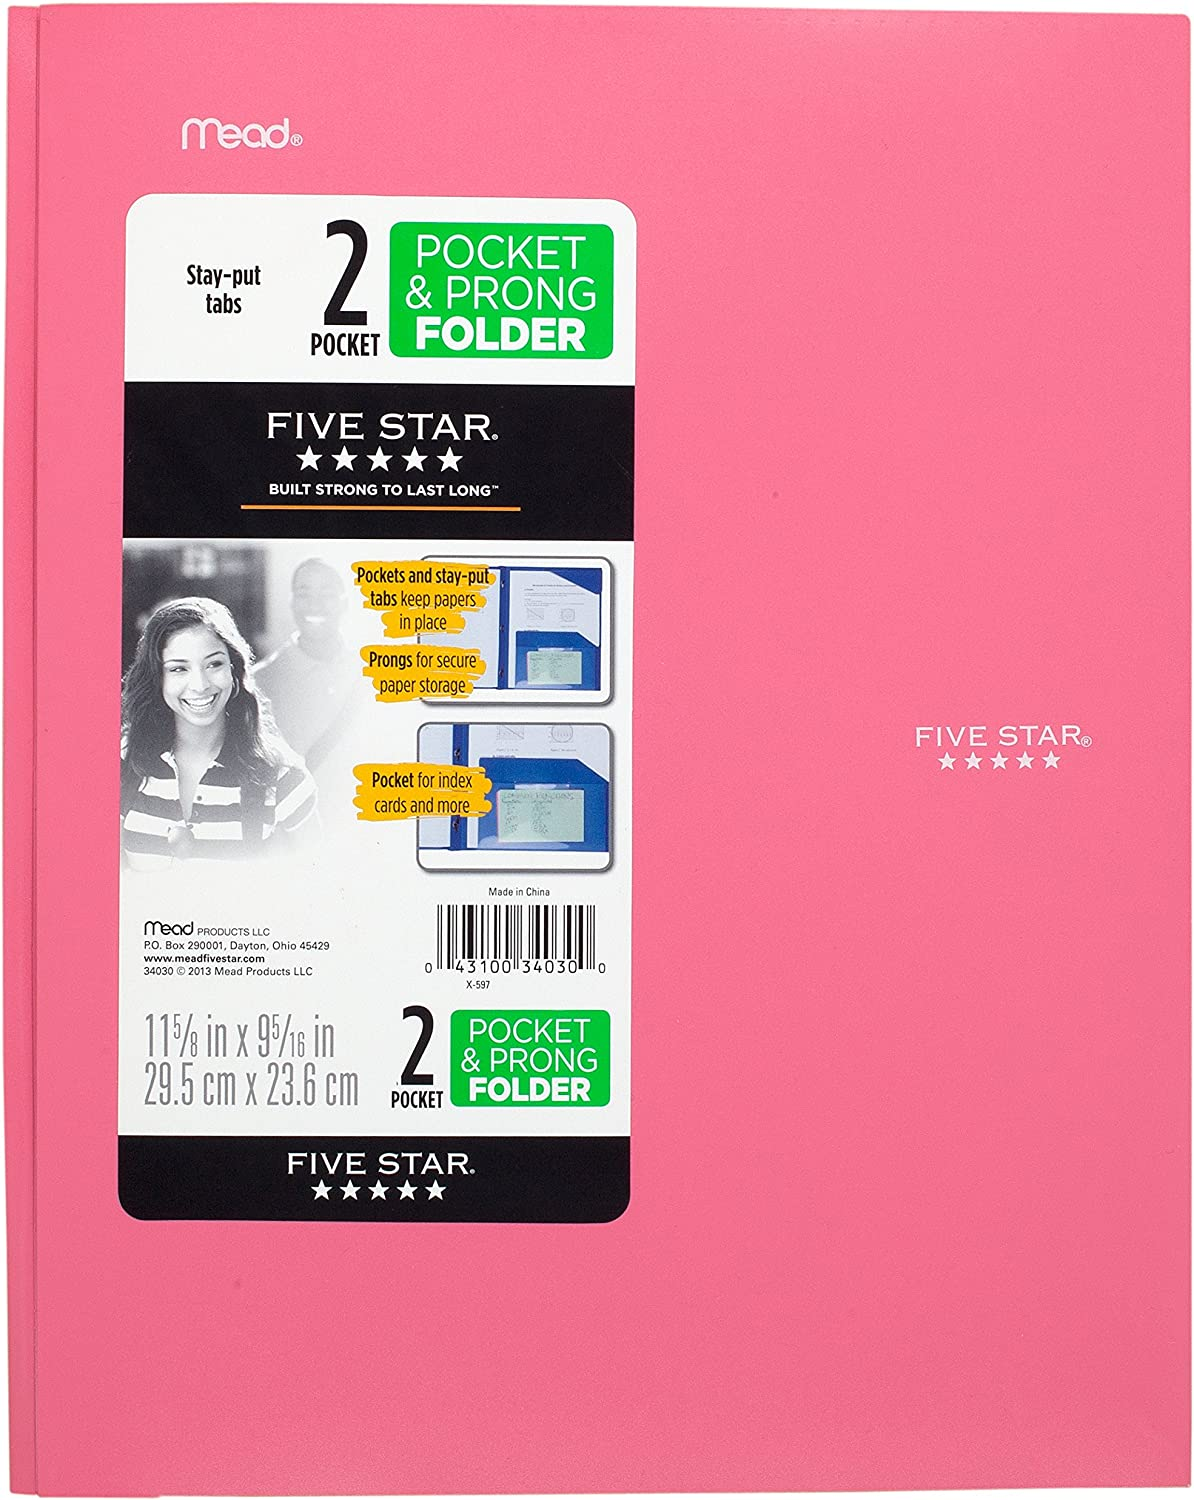 """Five Star 2-Pocket Folder, Stay-Put Folder, Plastic Colored Folders with Pockets & Prong Fasteners for 3-Ring Binders, For Home School Supplies & Home Office, 11"""" x 8-1/2"""", Pink (72105)"""